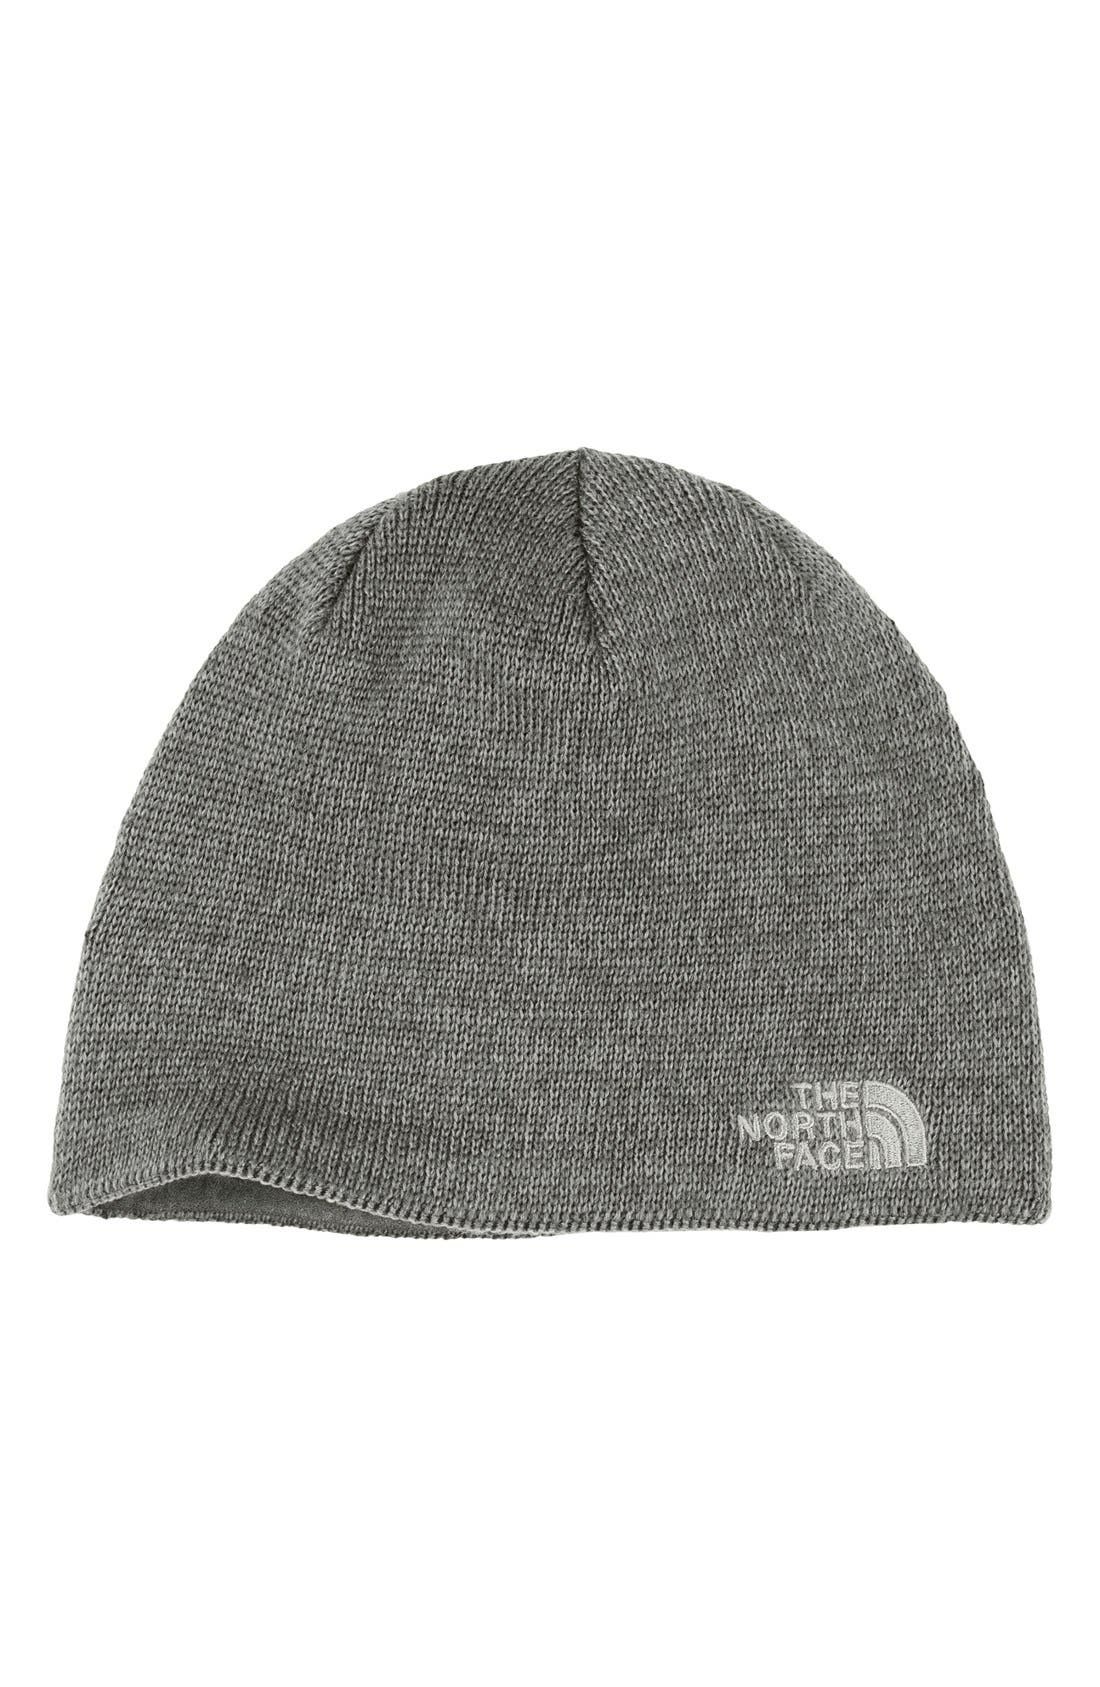 Main Image - The North Face 'Jim' Beanie